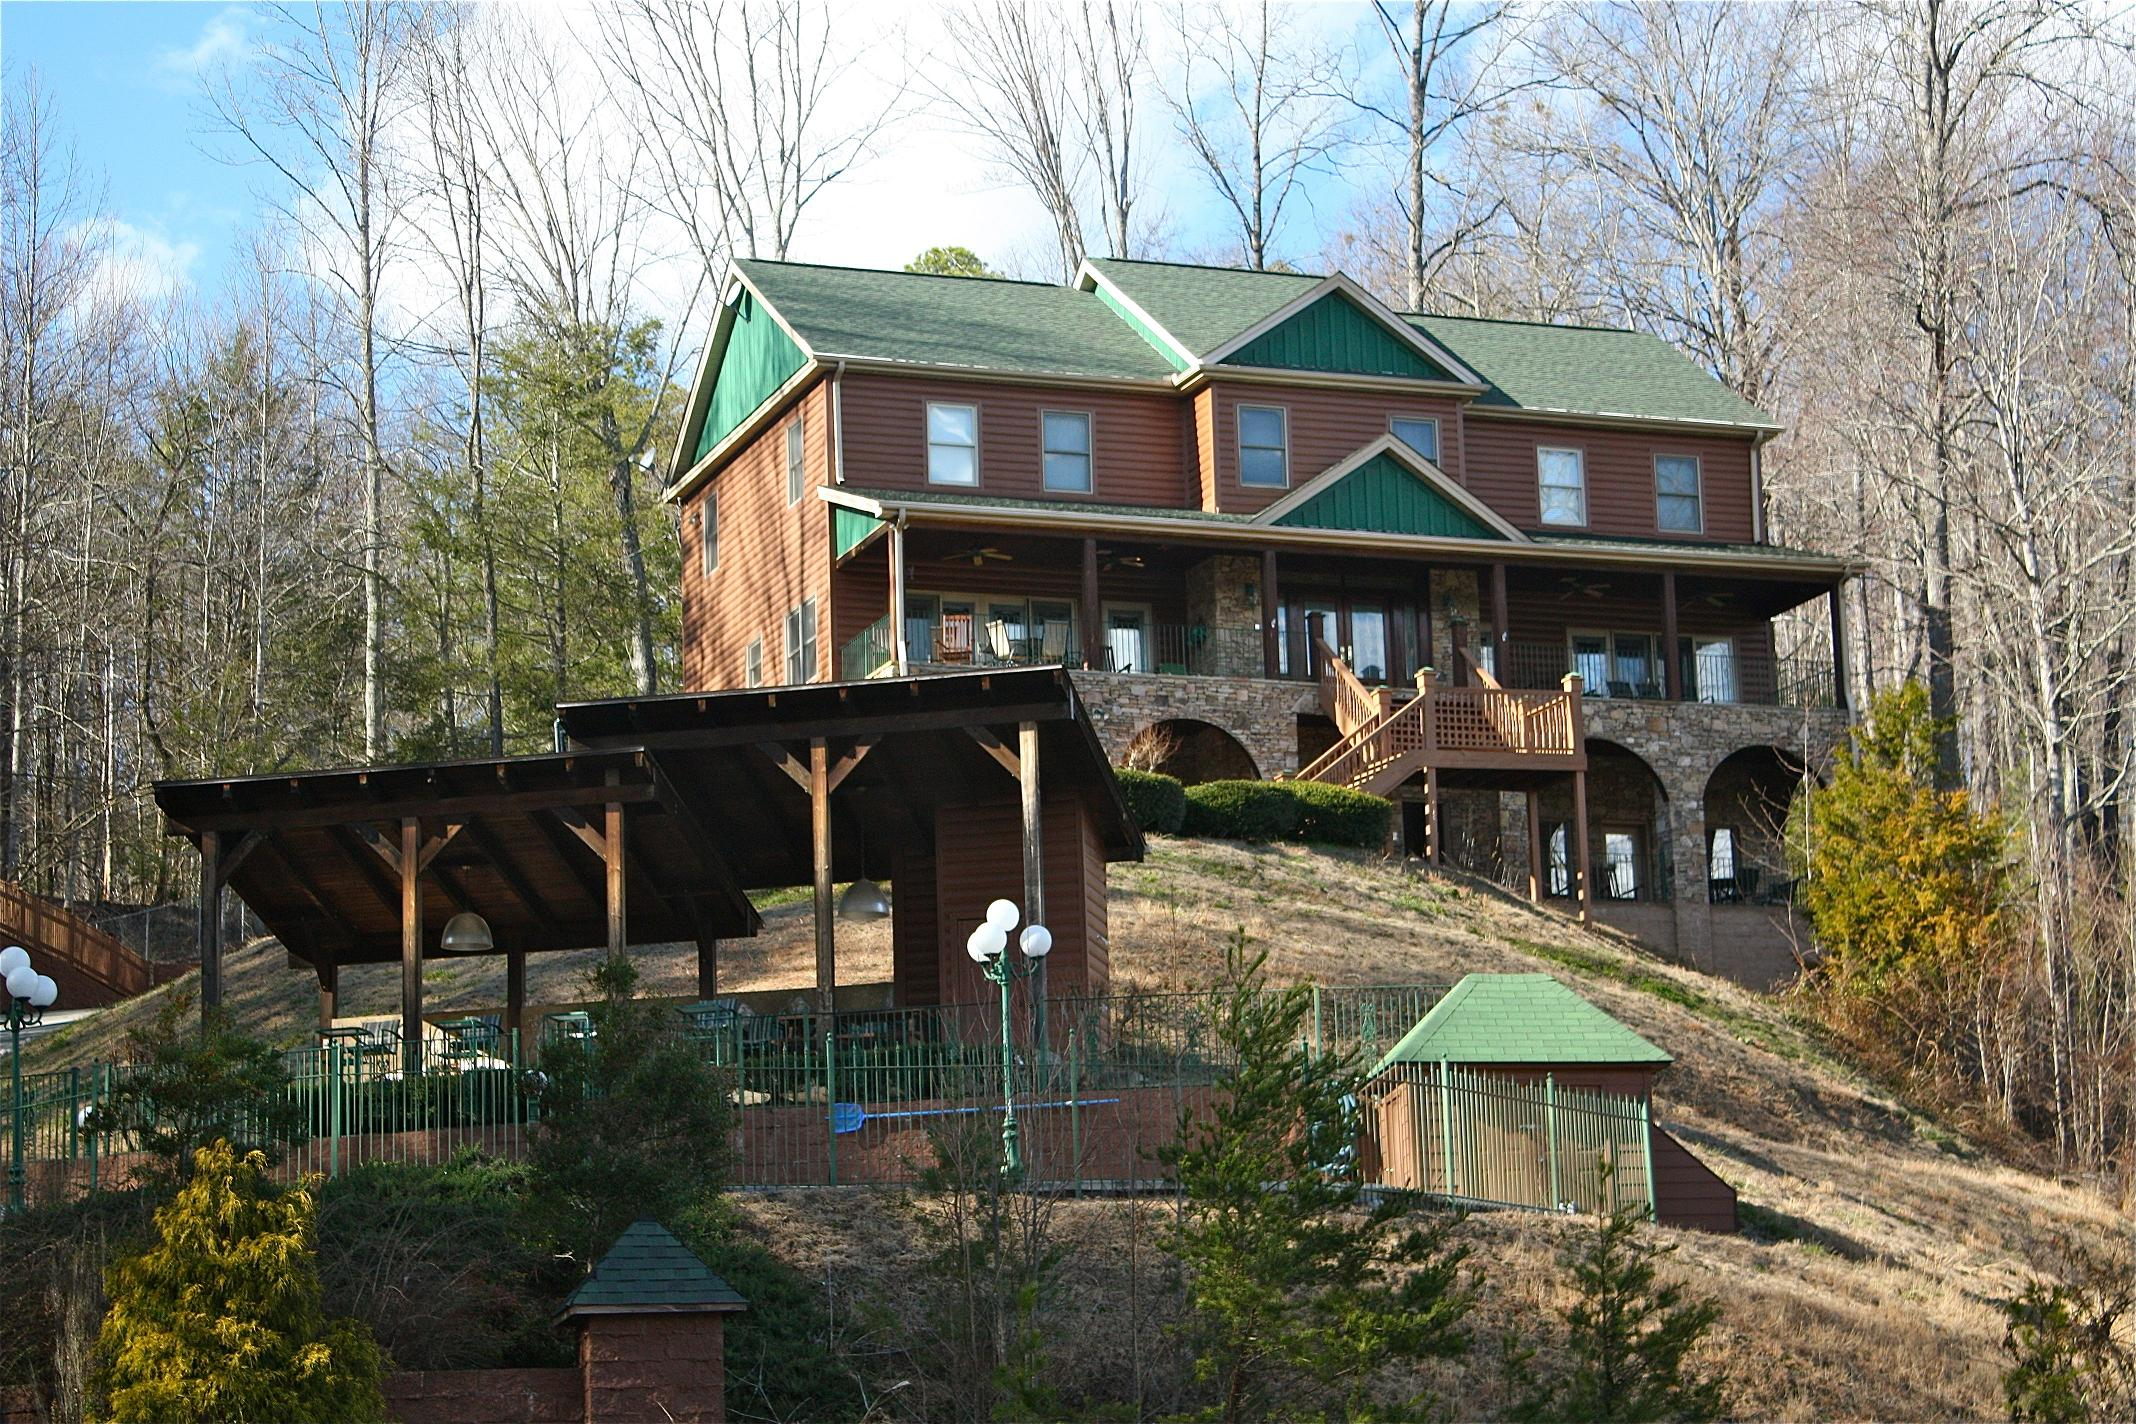 shenandoah lodge - a 5 bedroom cabin in gatlinburg,tennessee